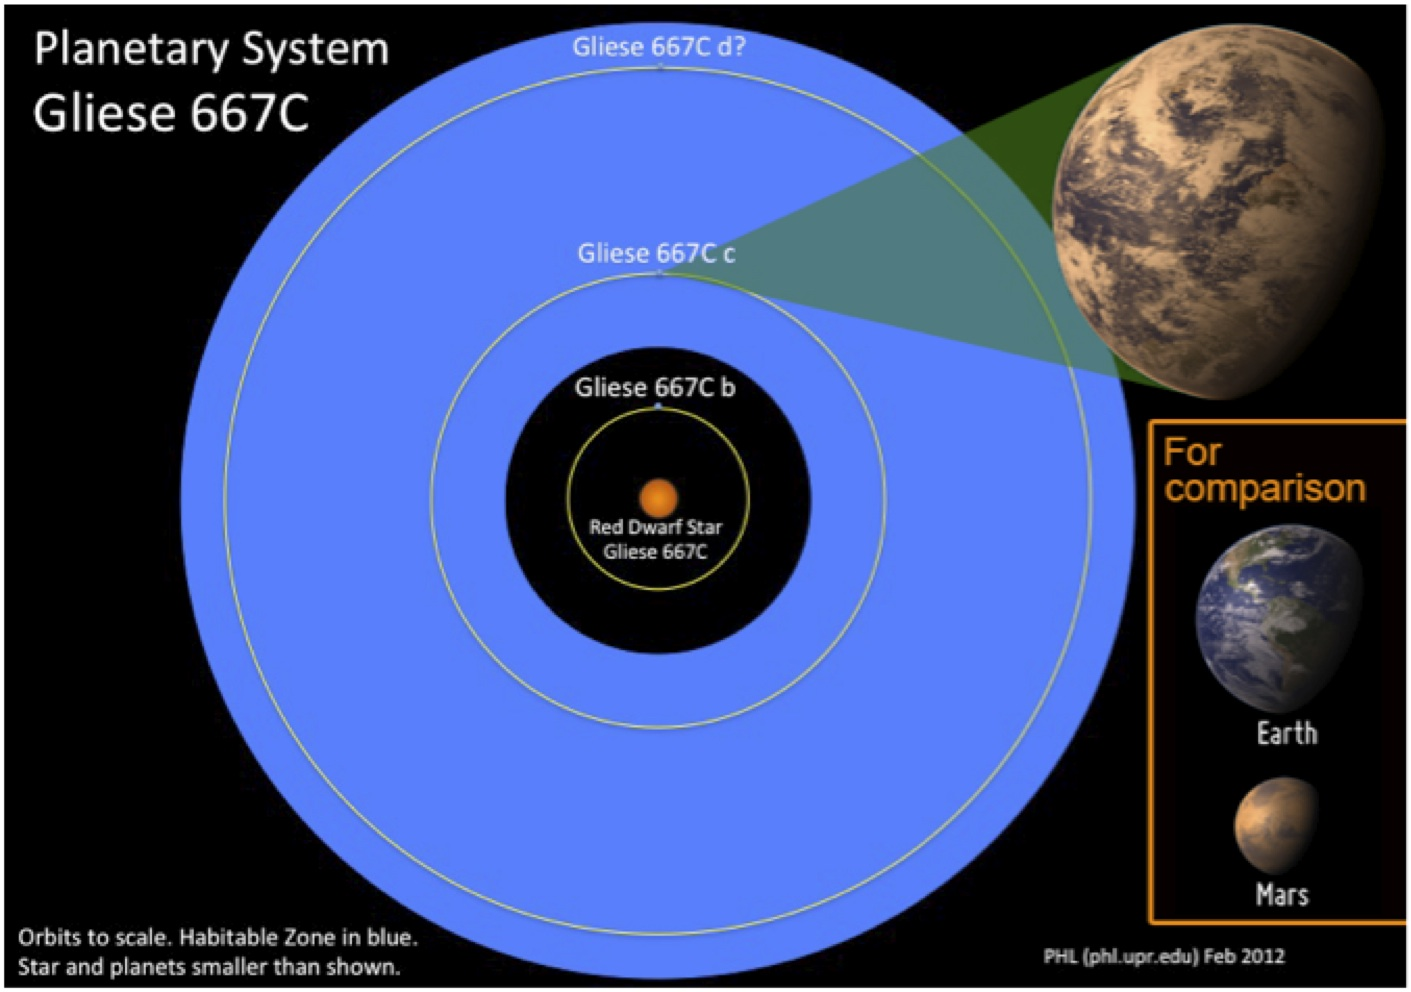 The planetary system around the red dwarf star Gliese 667C consists of up to three currently known exoplanets of super-Earth type.